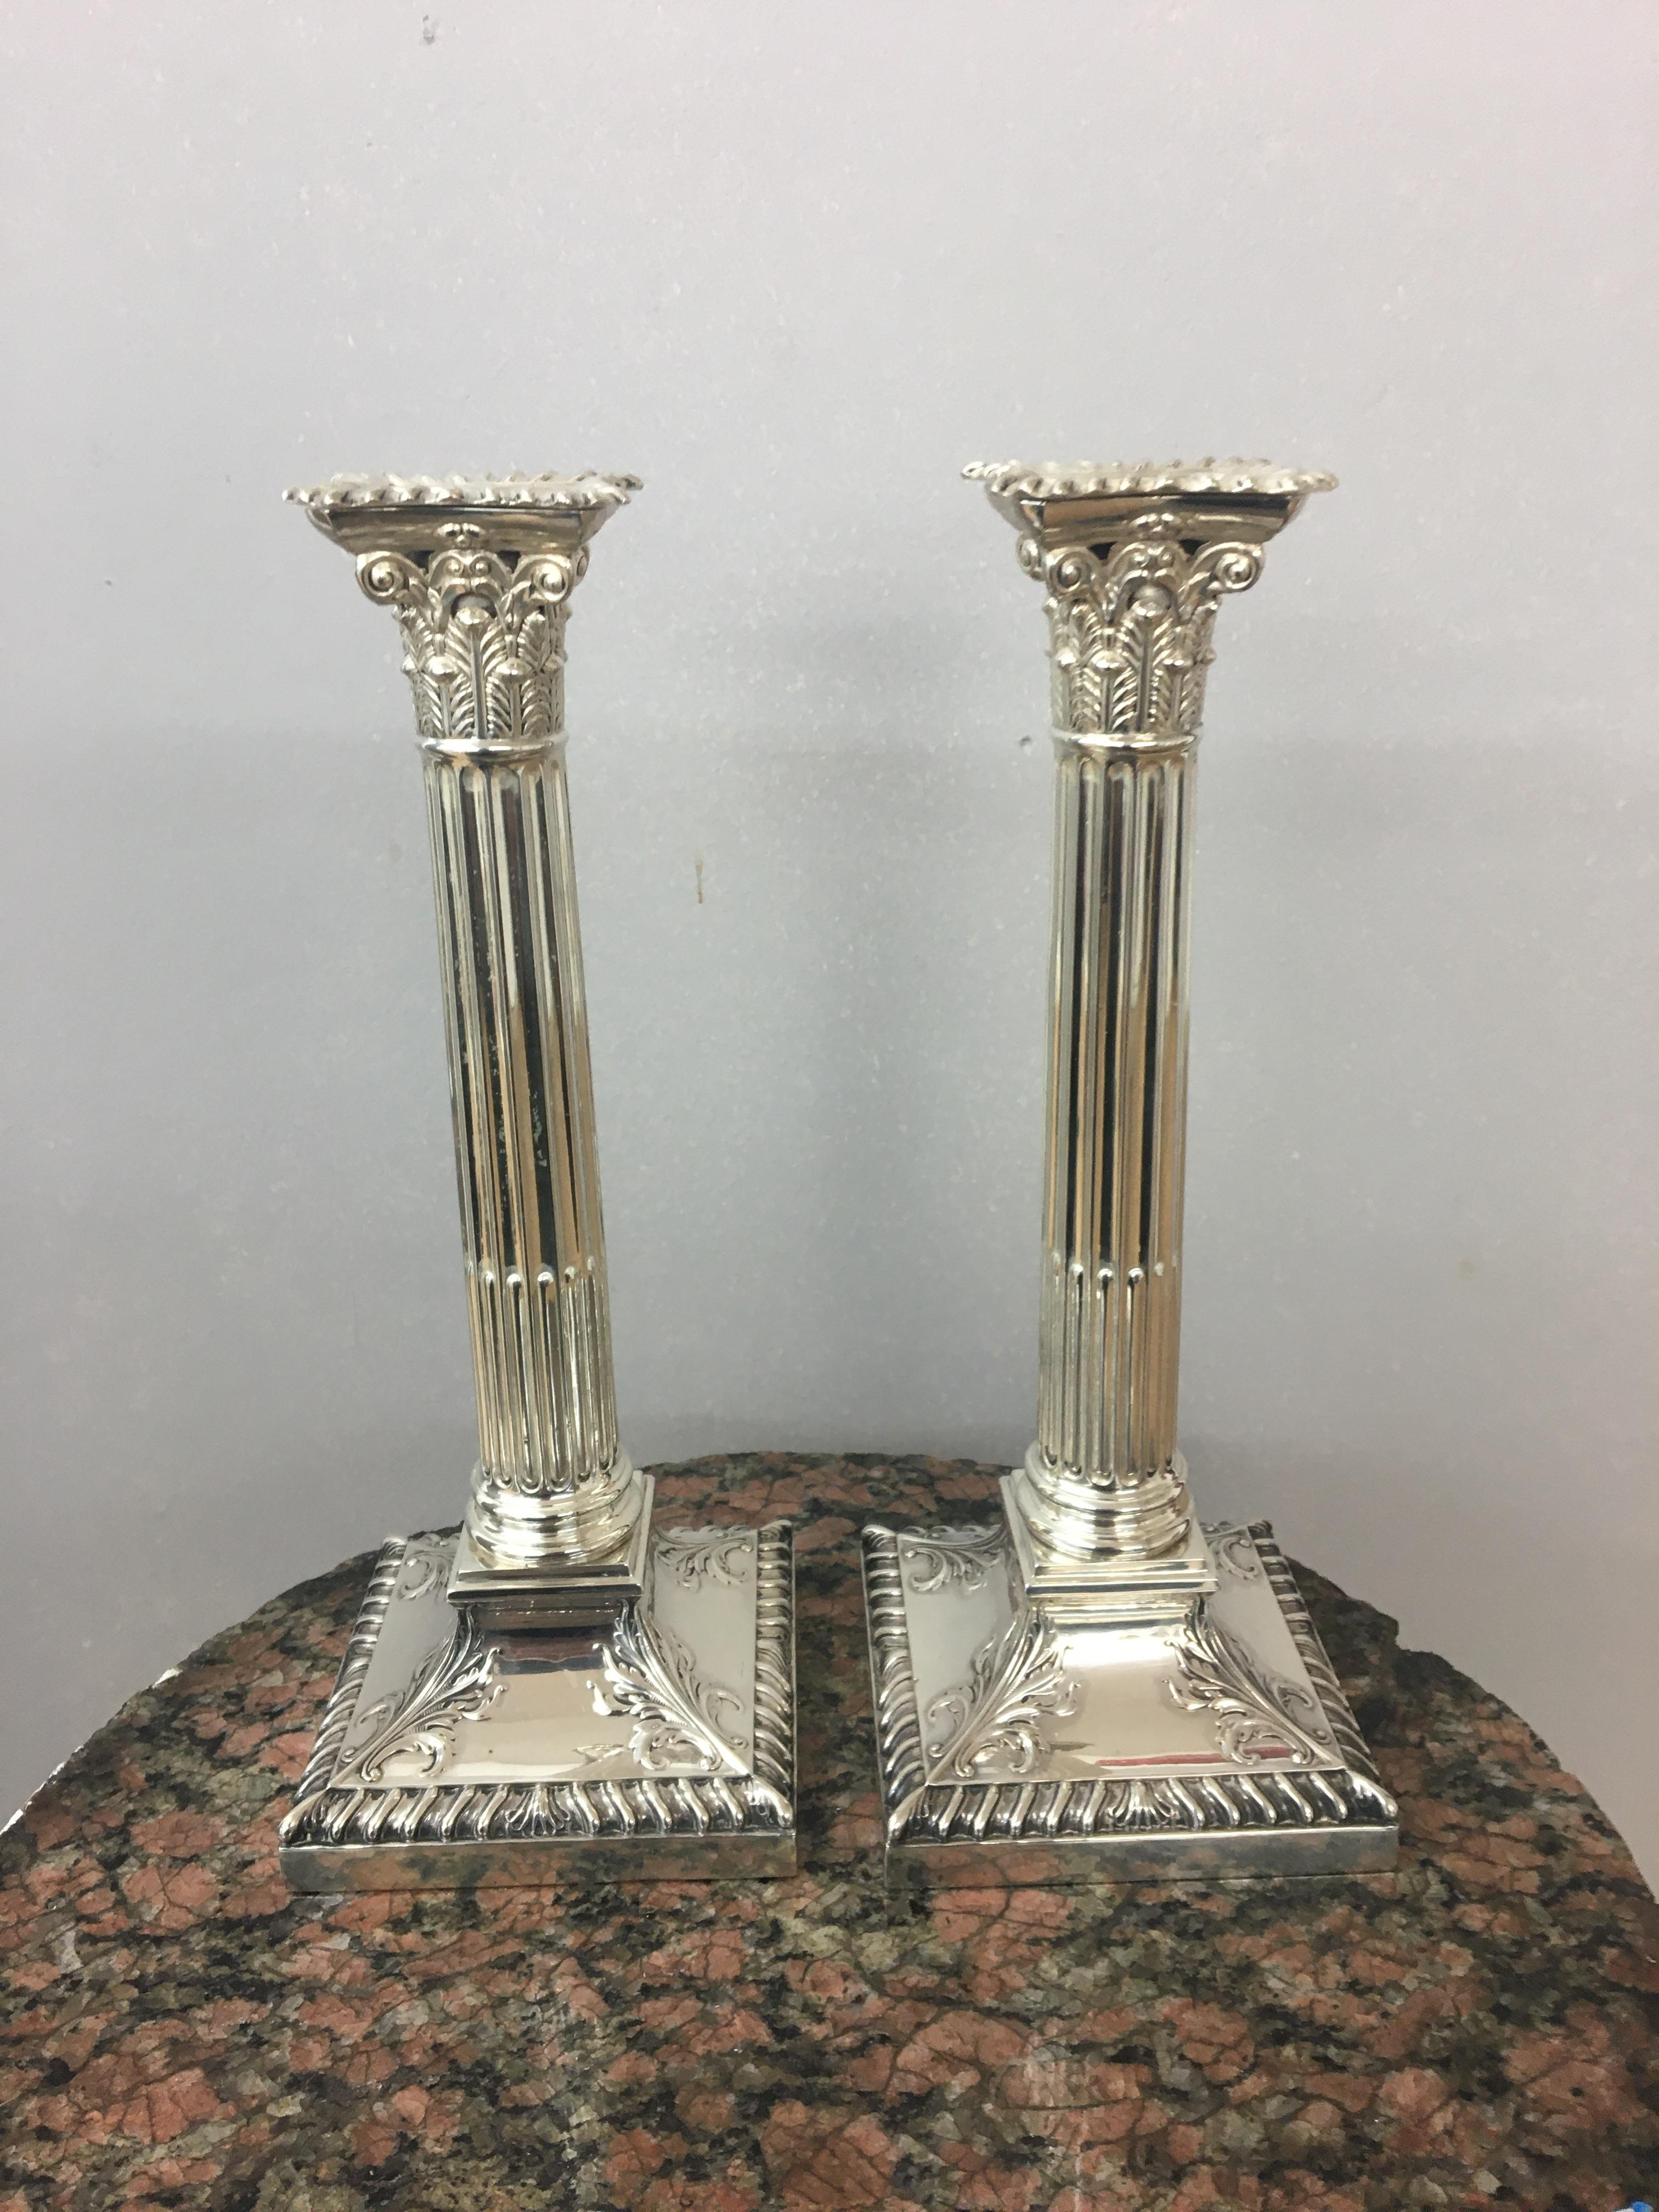 Edwardian silver Corinthian candlesticks, Sheffield, 1908, Hawksworth Eyre and co. height 24cm. - Image 4 of 4